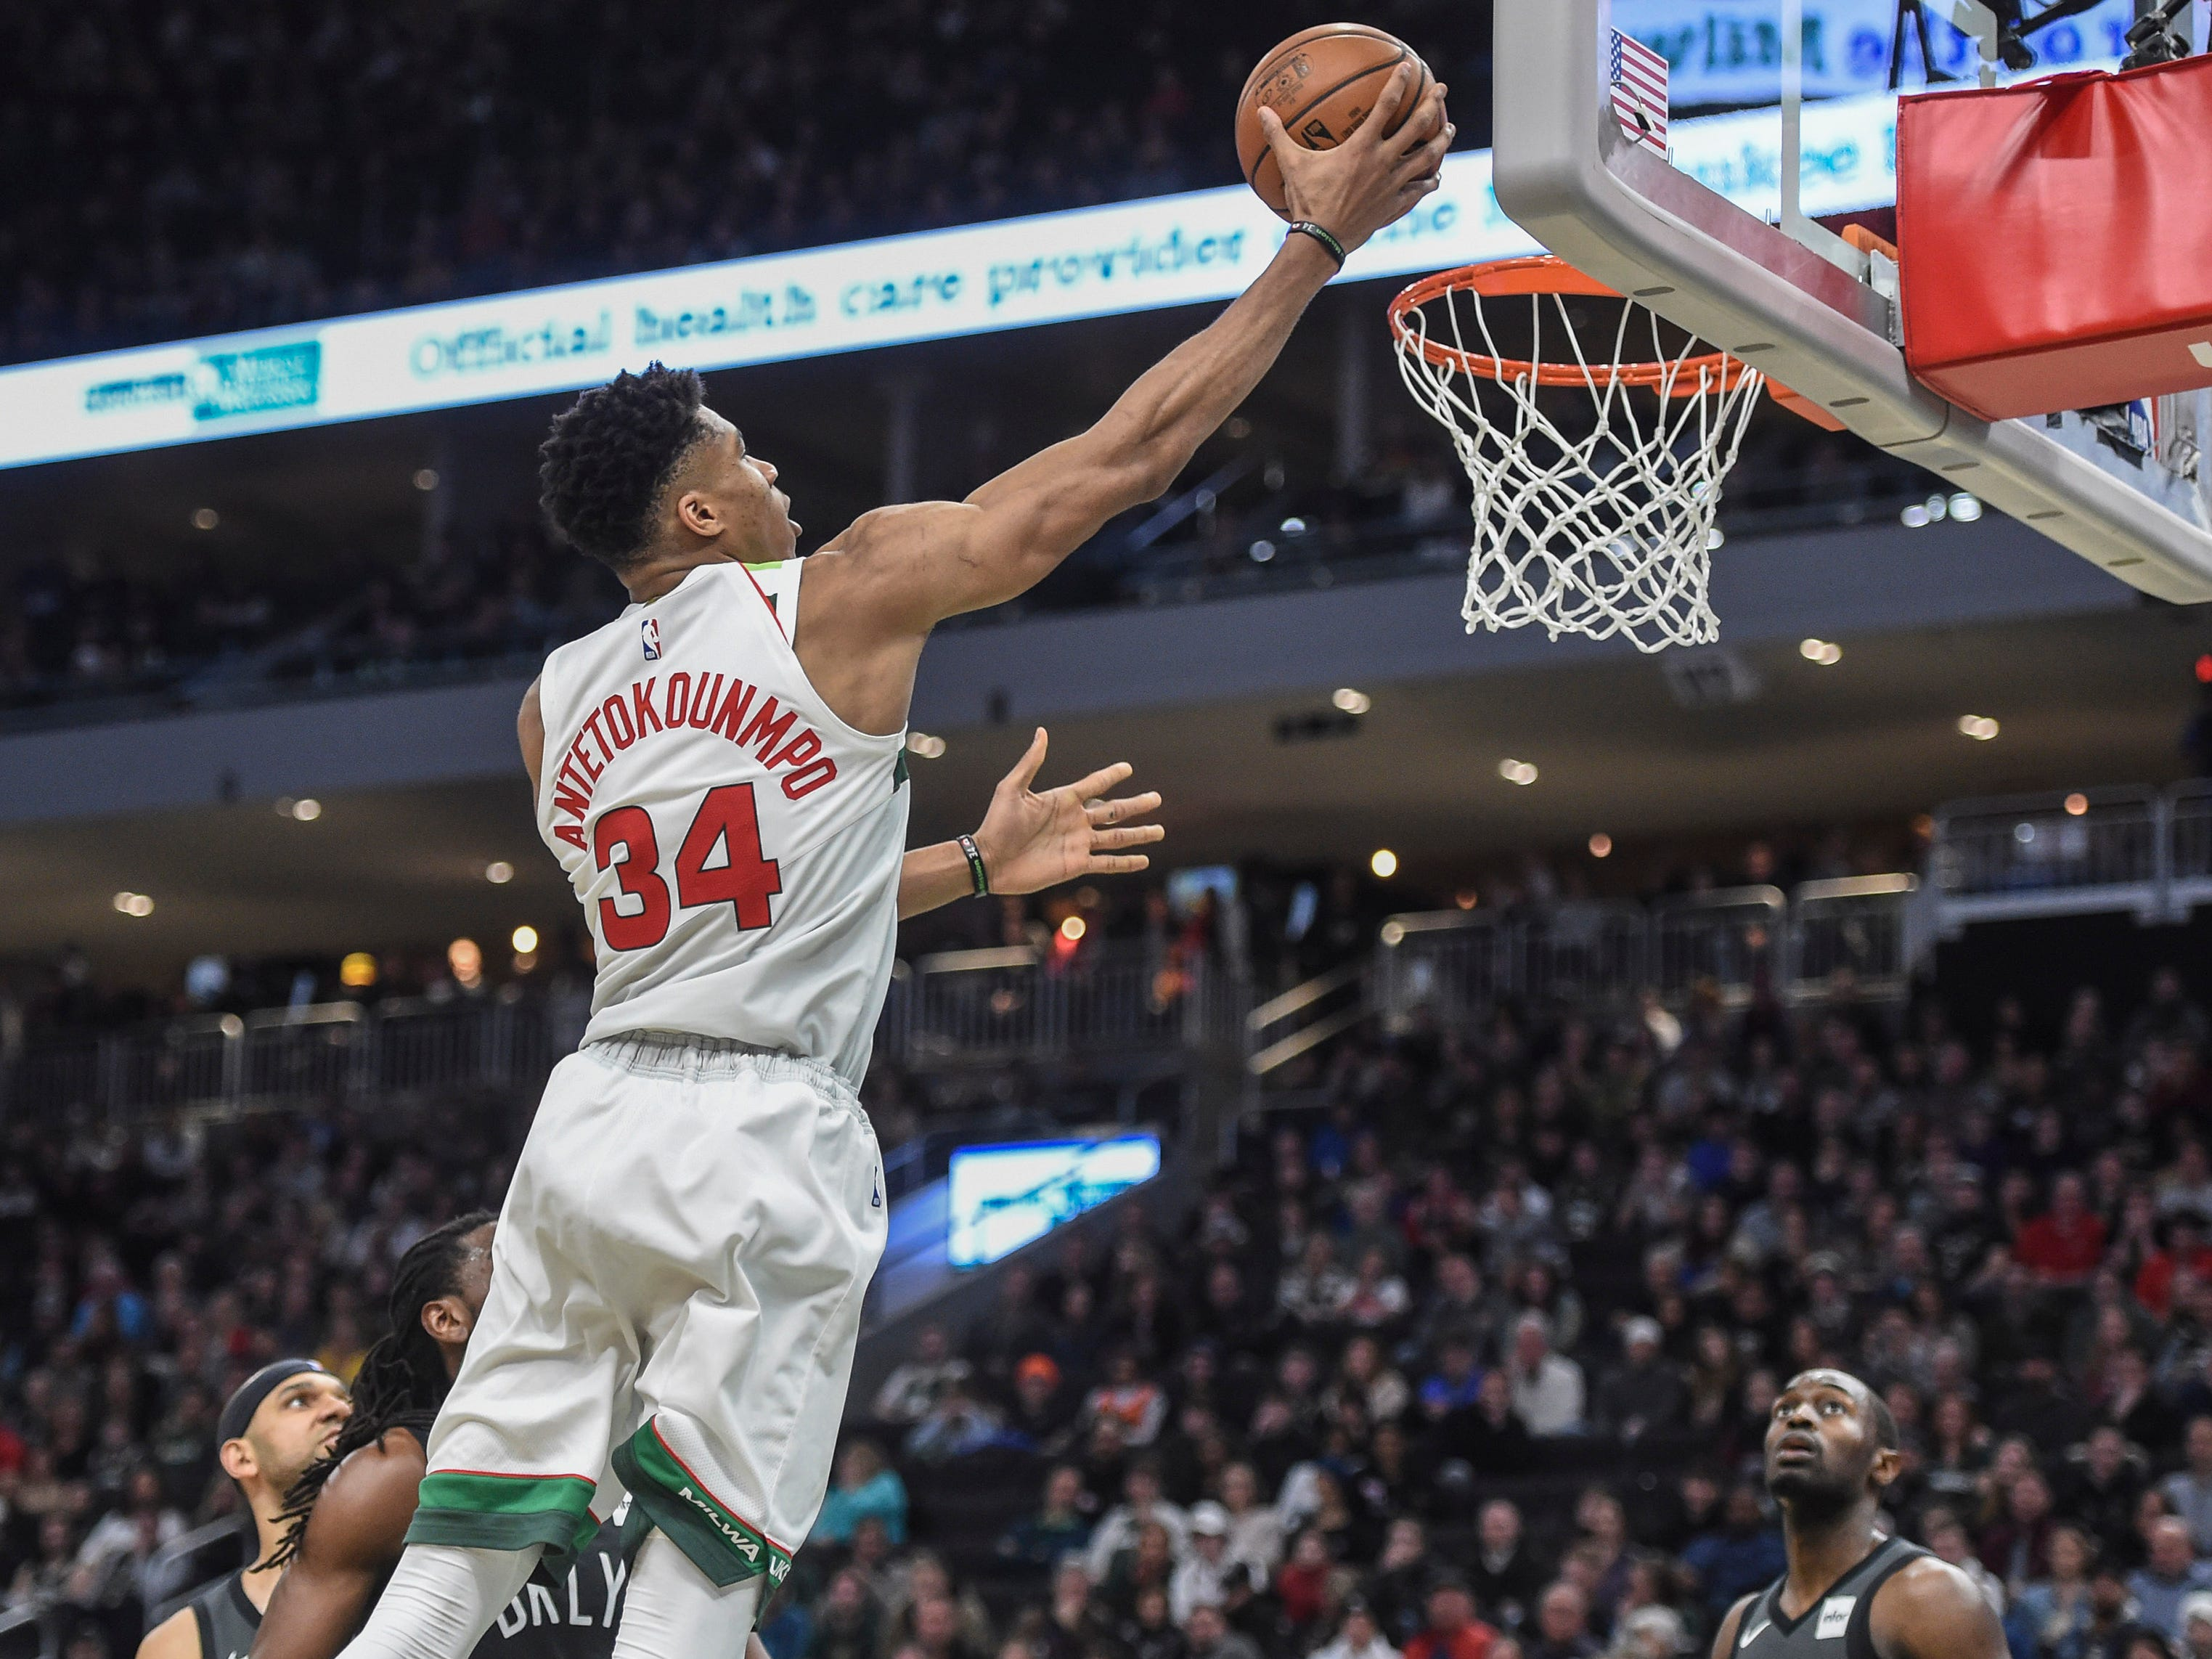 37. Giannis Antetokounmpo, Bucks (Dec. 29): 31 points, 10 rebounds, 10 assists in 129-115 win over Nets (third of season).